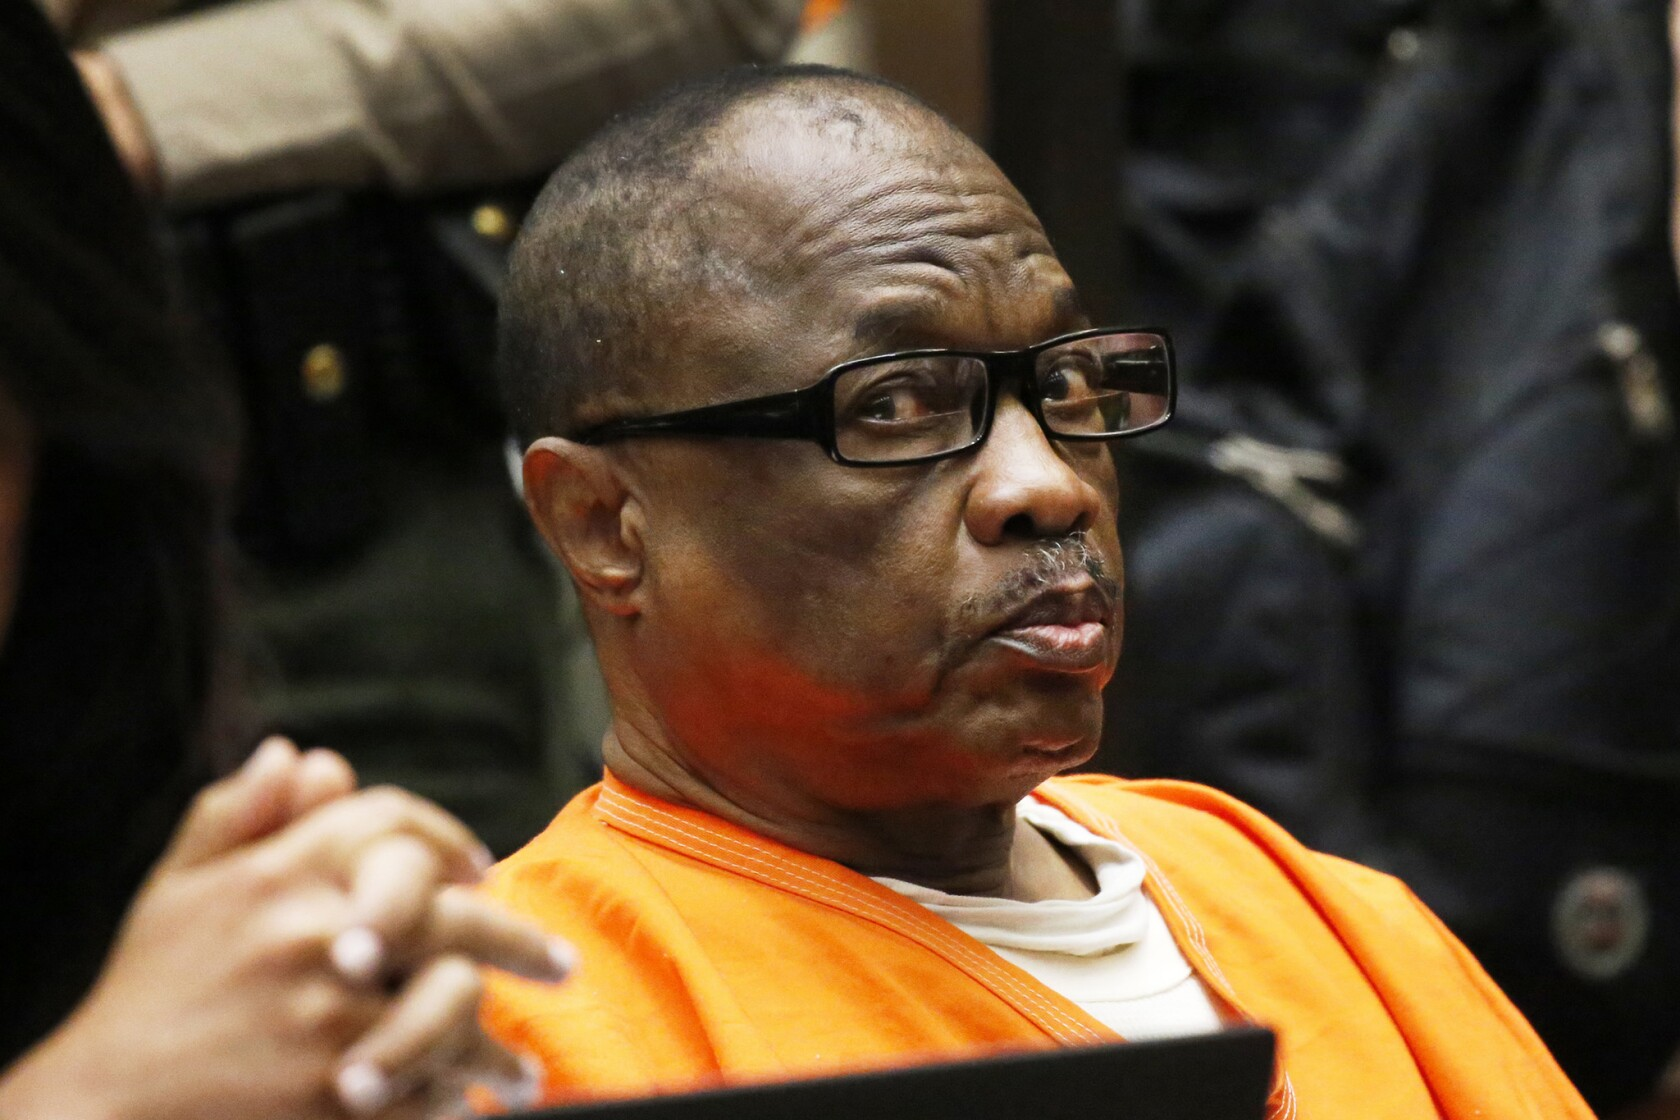 The 'Grim Sleeper' is sentenced to death for string of